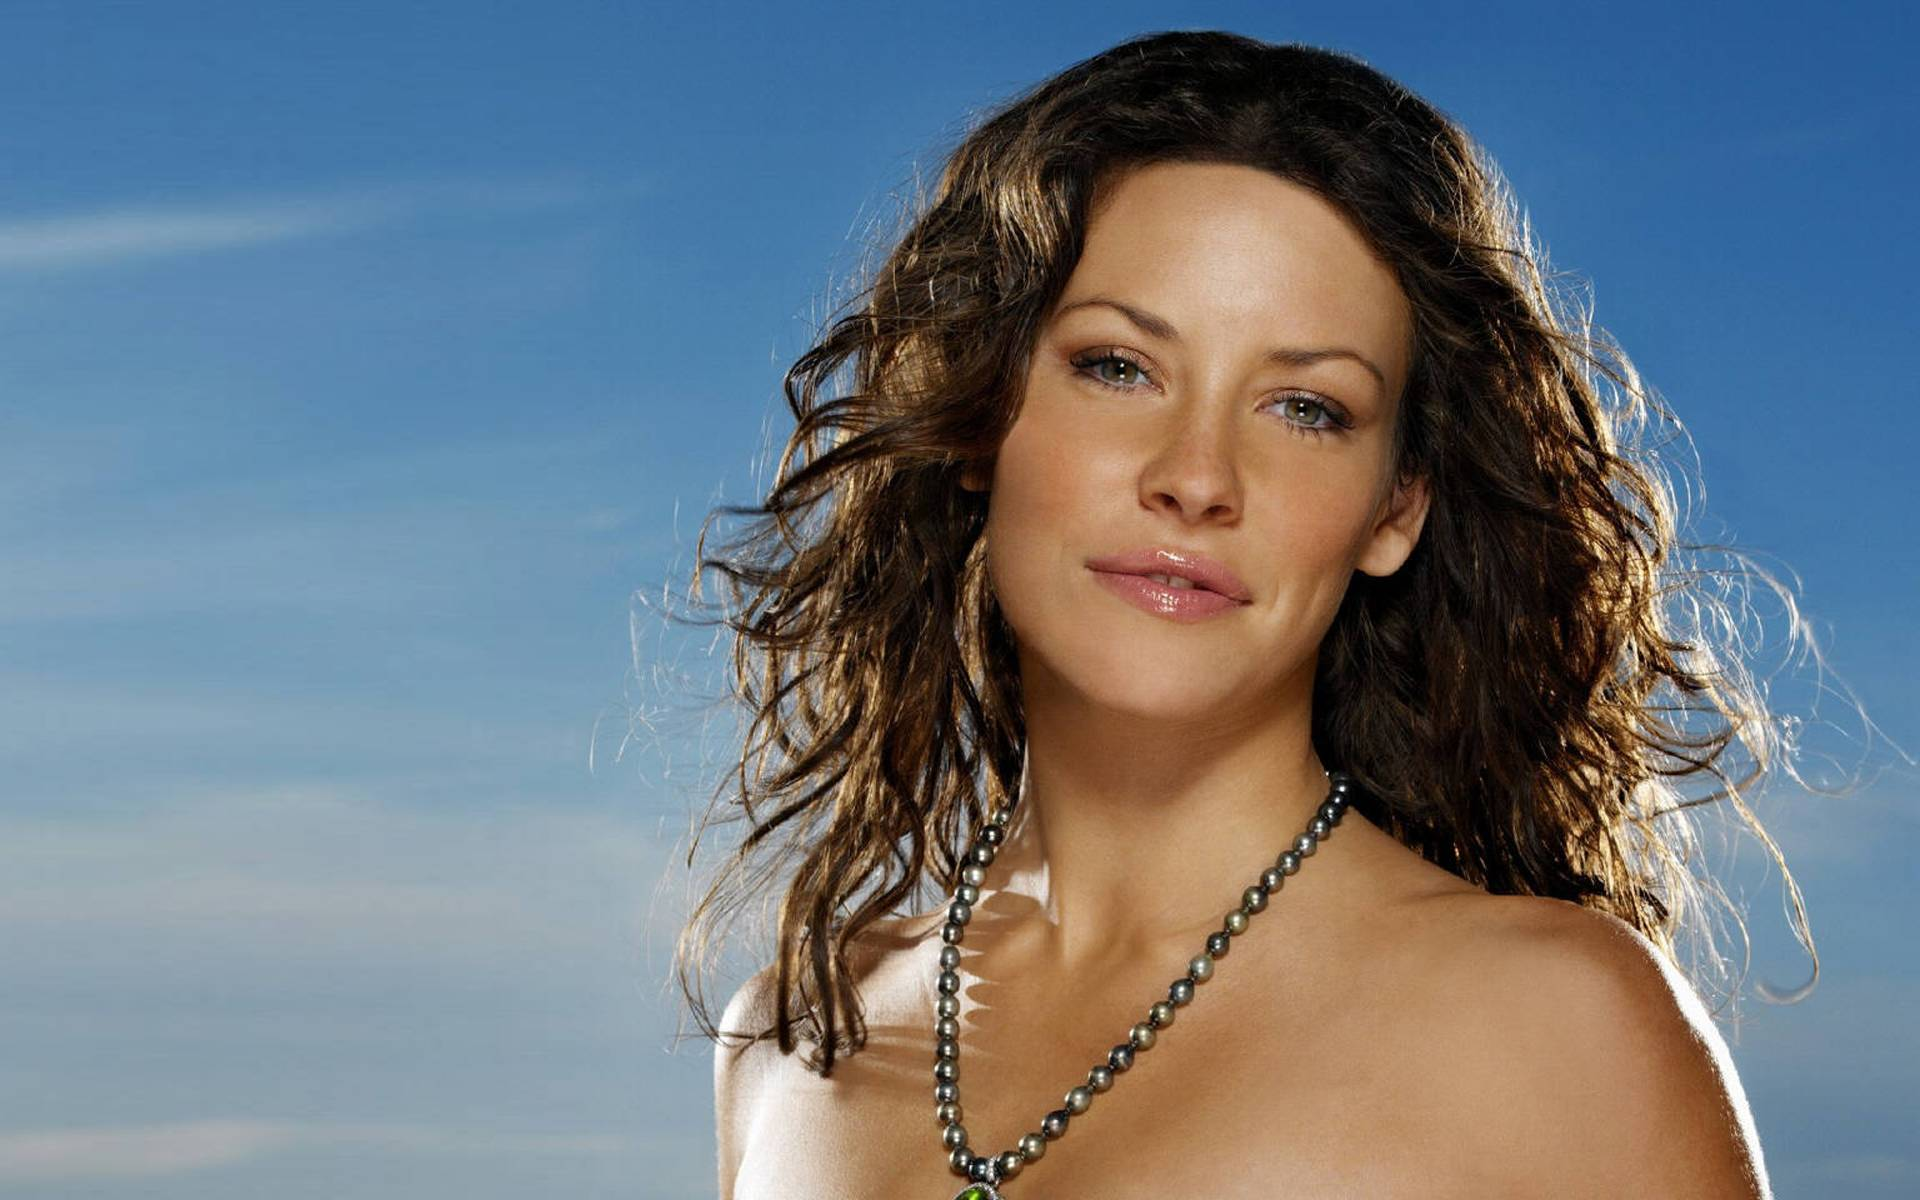 Sorry, Liv tyler nude fakes have